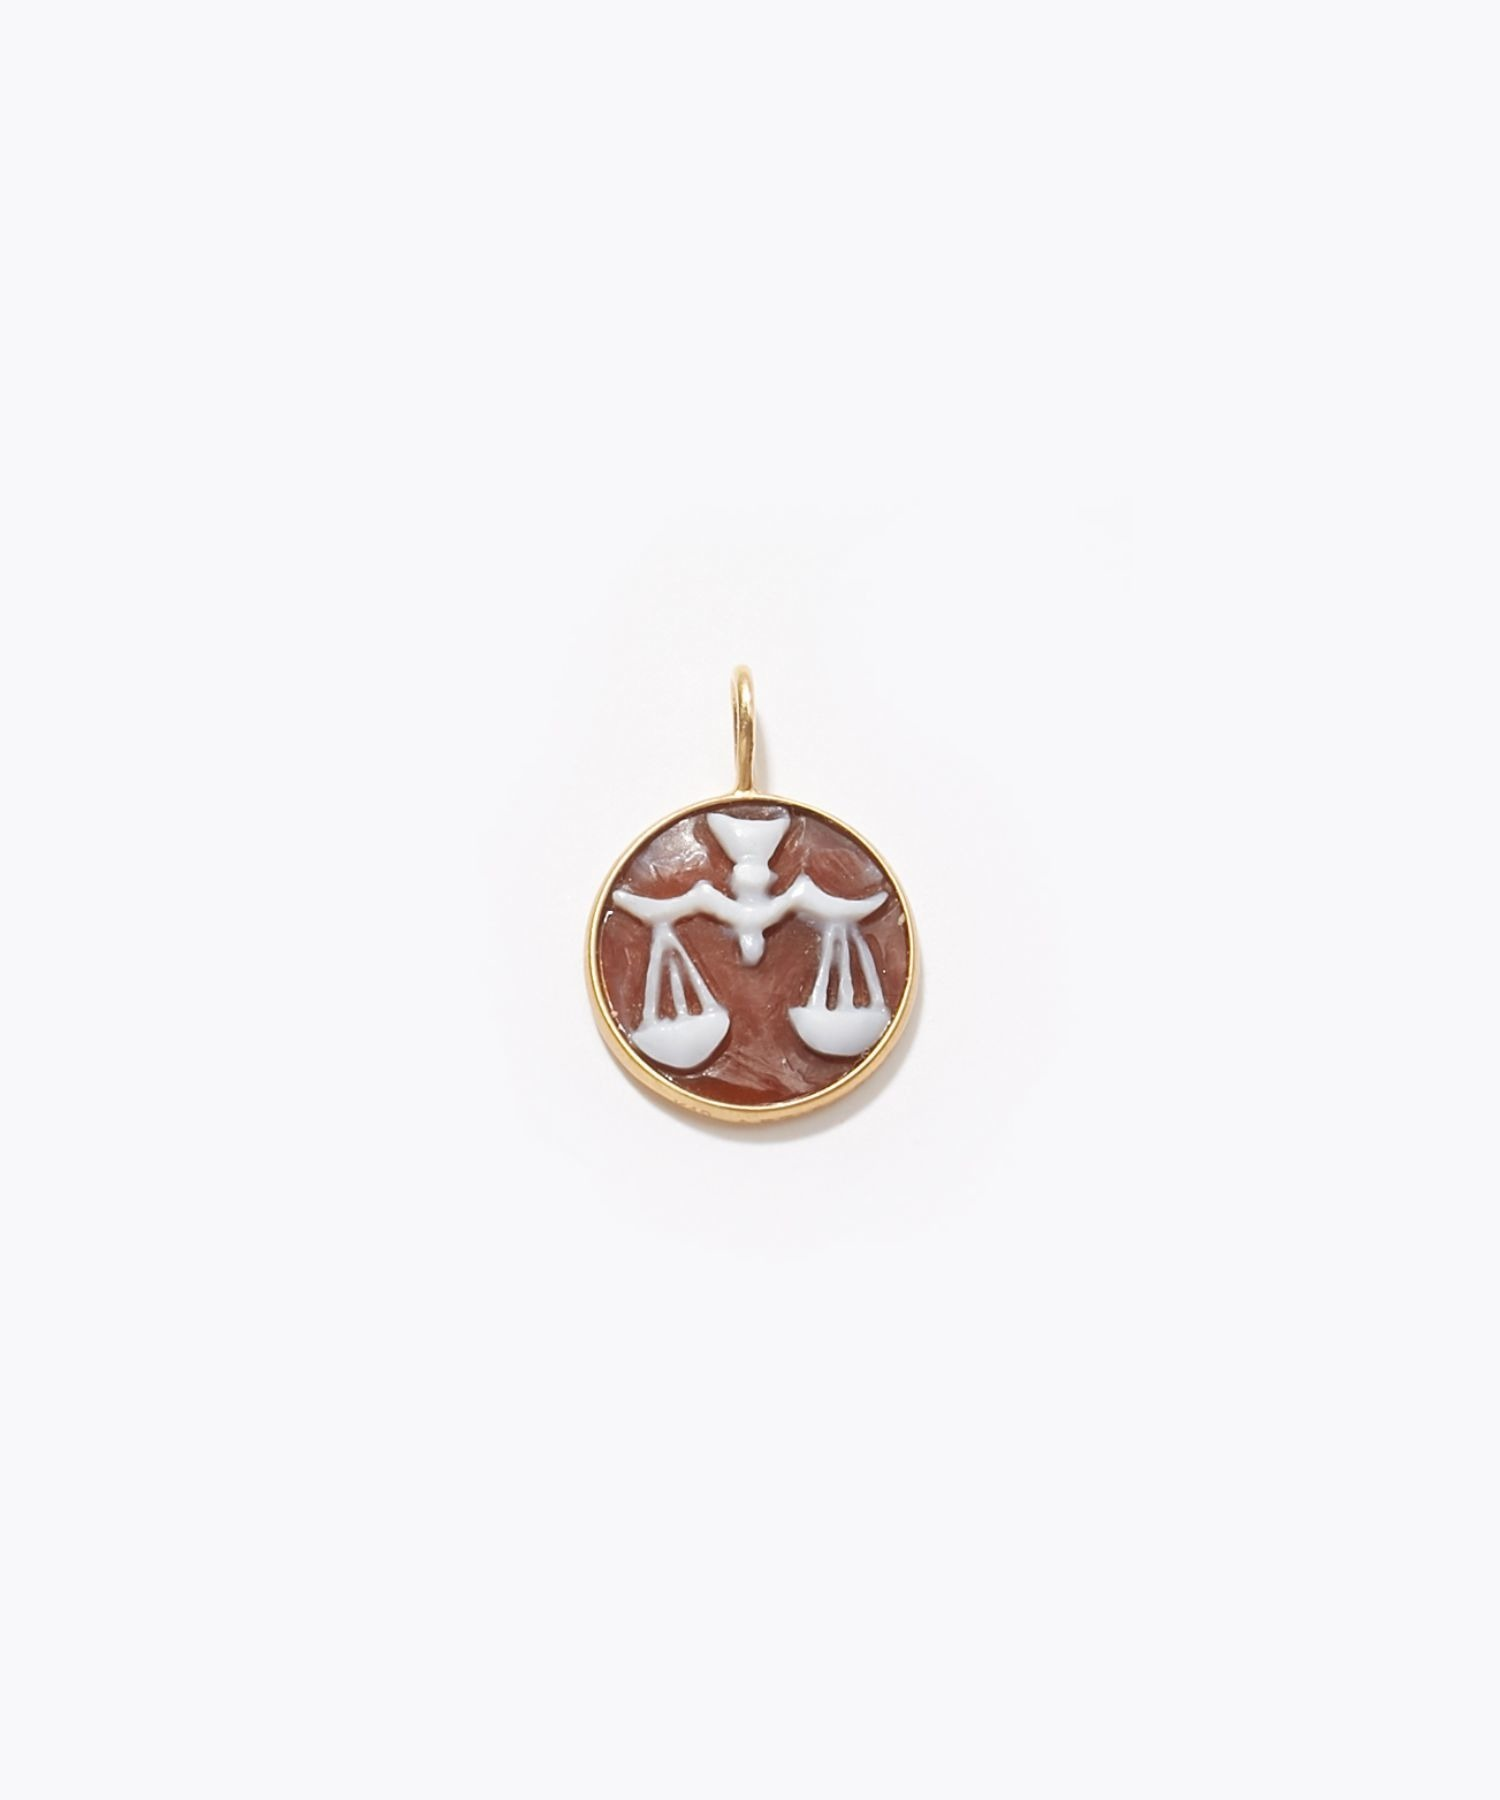 [constellation] Libra cameo curving charm